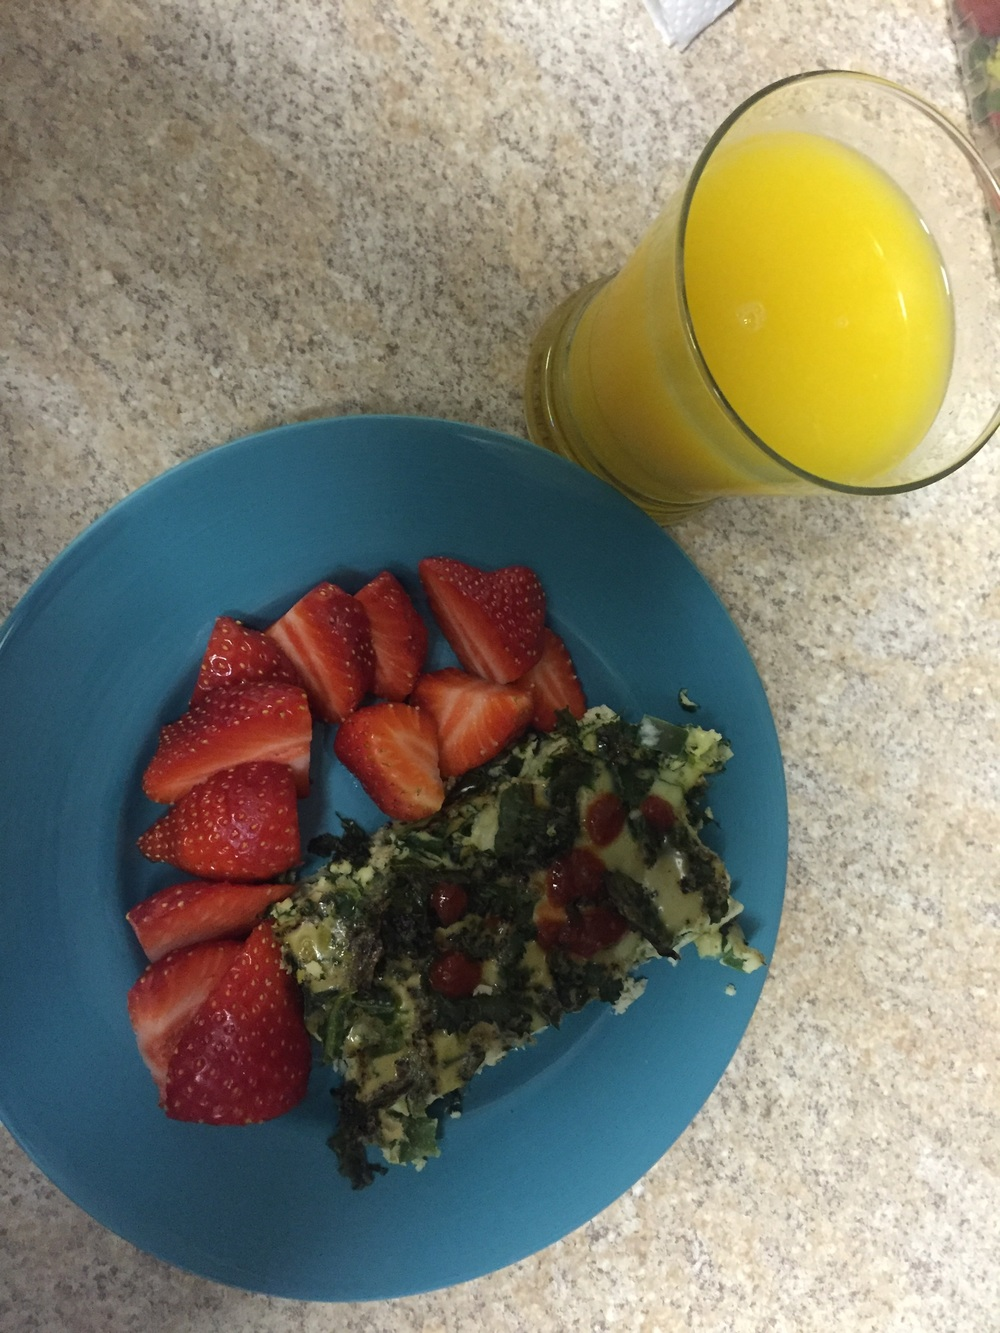 I made an egg, kale, spinach and green peppers casserole for breakfast.   The OJ isn't mine; it's not part of the plan. I eat the fruit with my eggs or in my oatmeal.